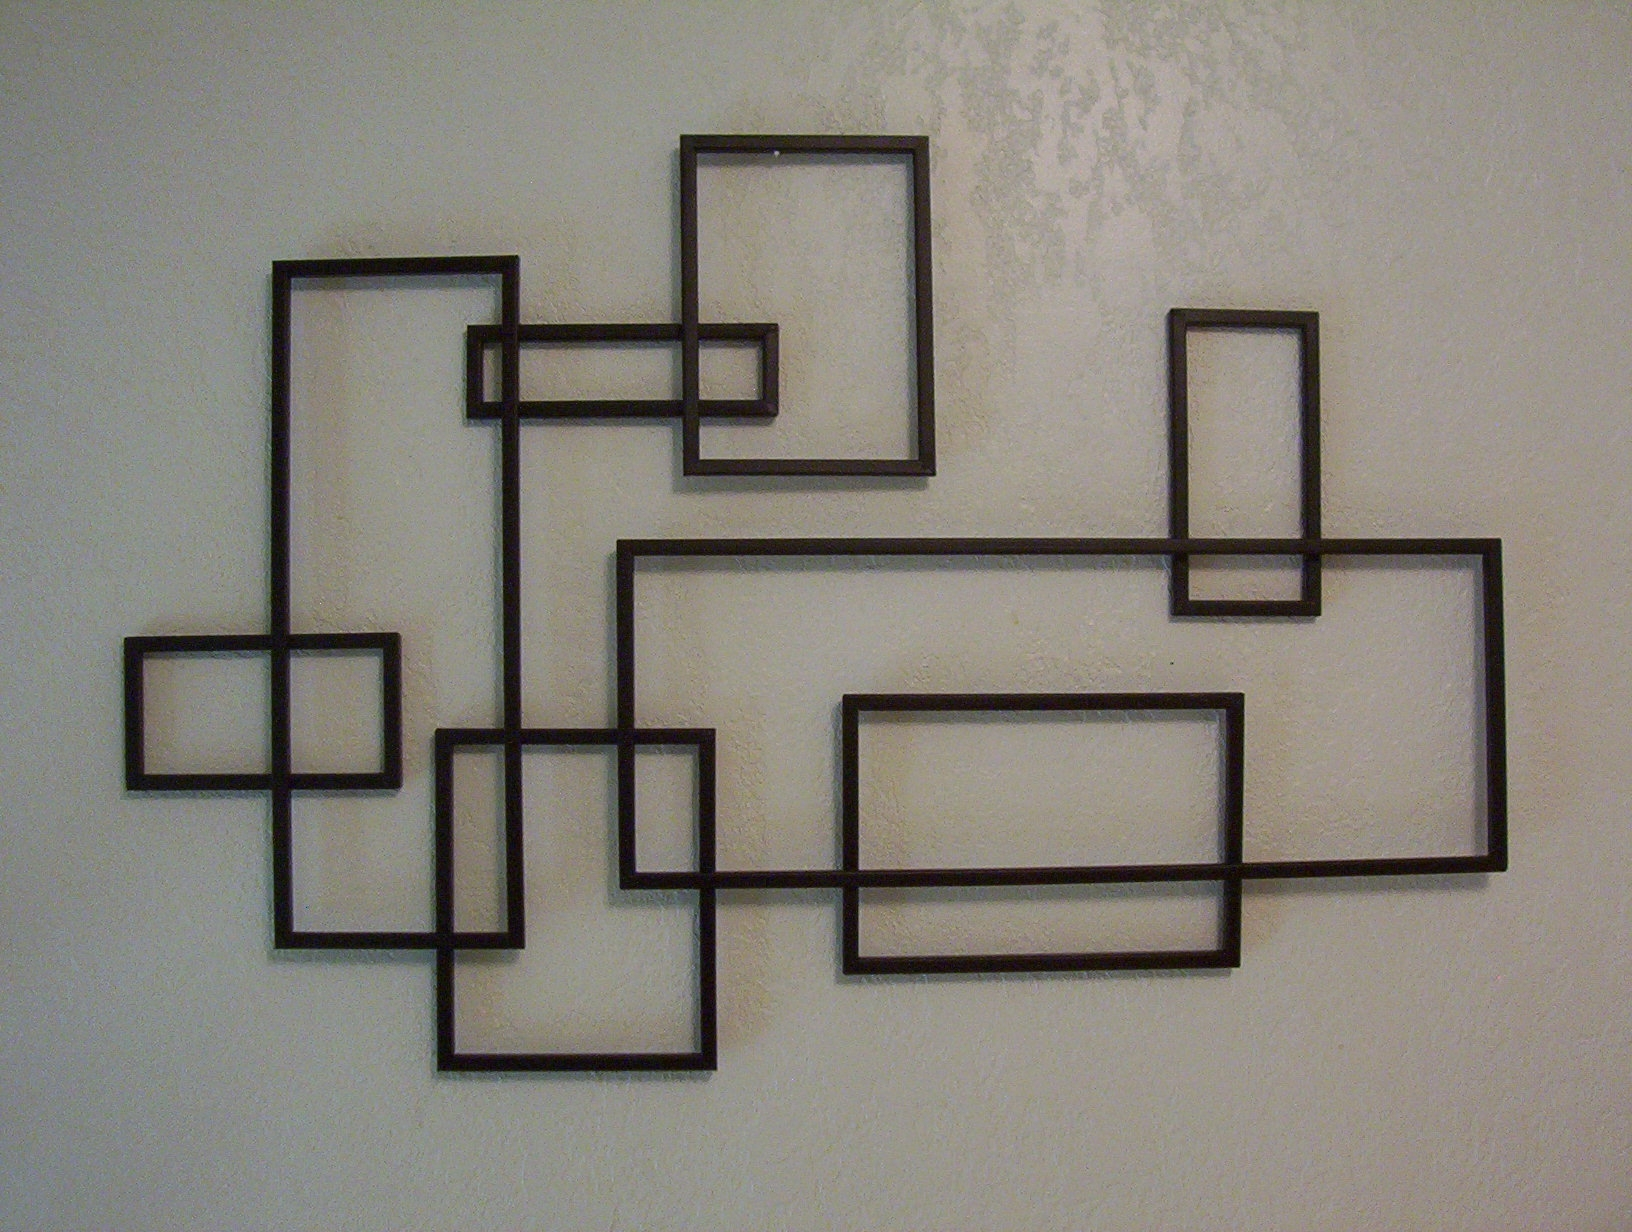 Wall Art Designs: Black Metal Wall Art Mid Century Modern De Stijl Intended For Best And Newest Abstract Iron Wall Art (View 3 of 20)